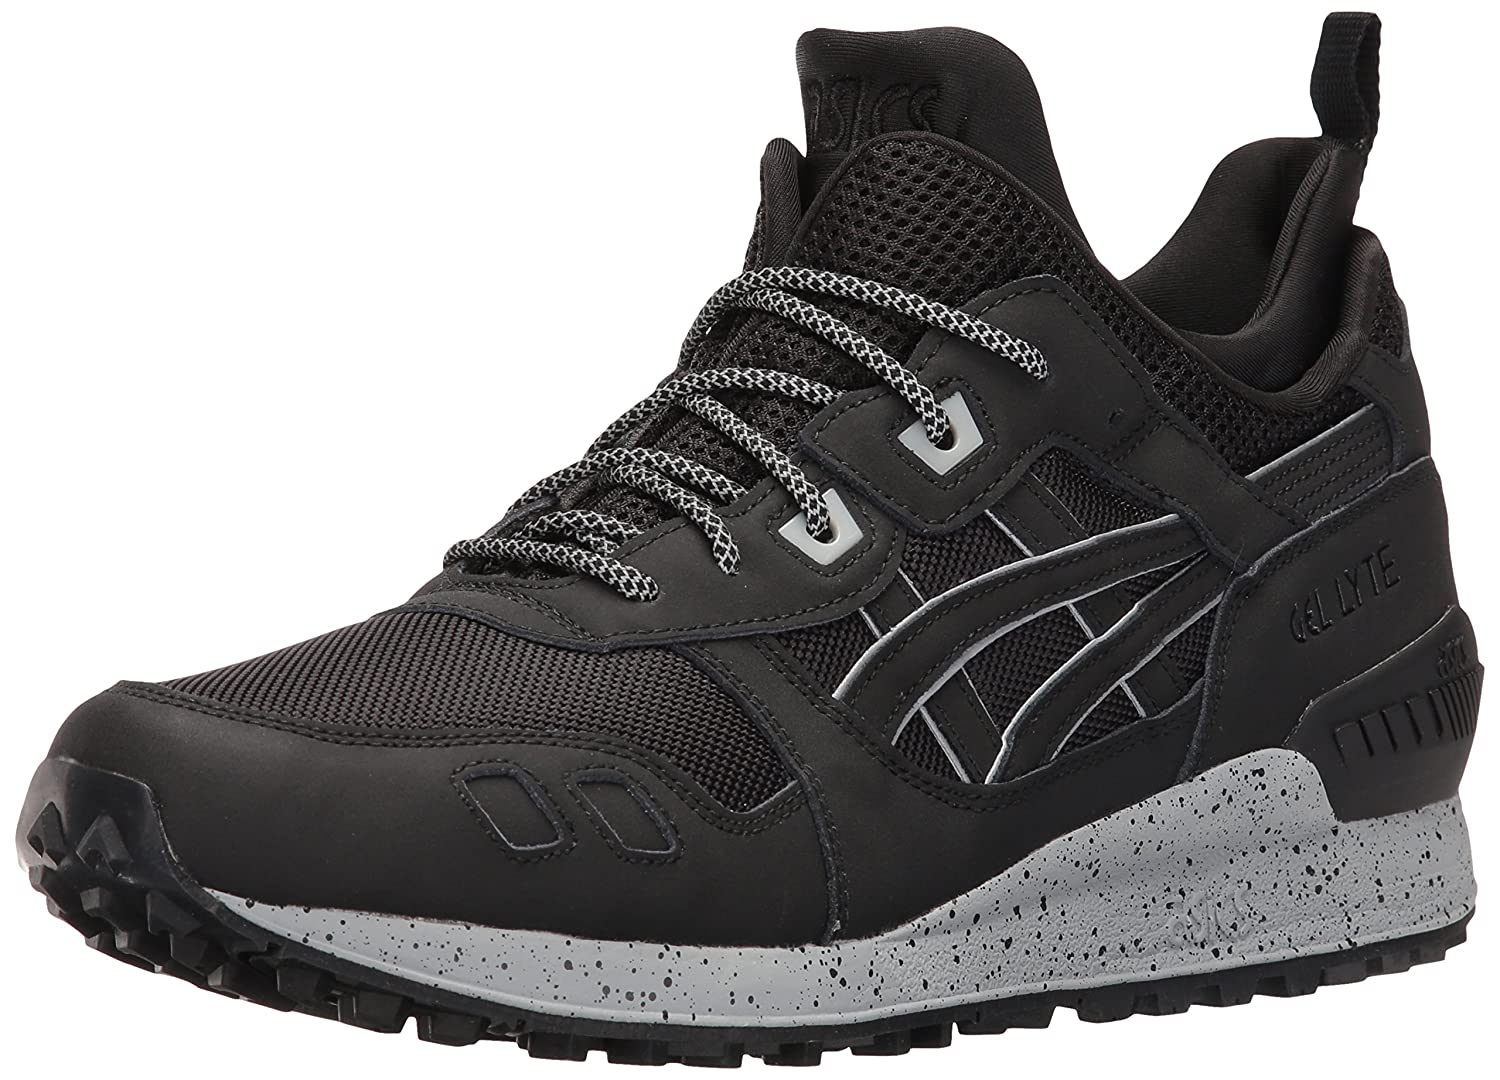 ASICS Men's Gel-Lyte MT Fashion Sneaker B01ETZSGA2 7.5 D(M) US|Black/Black